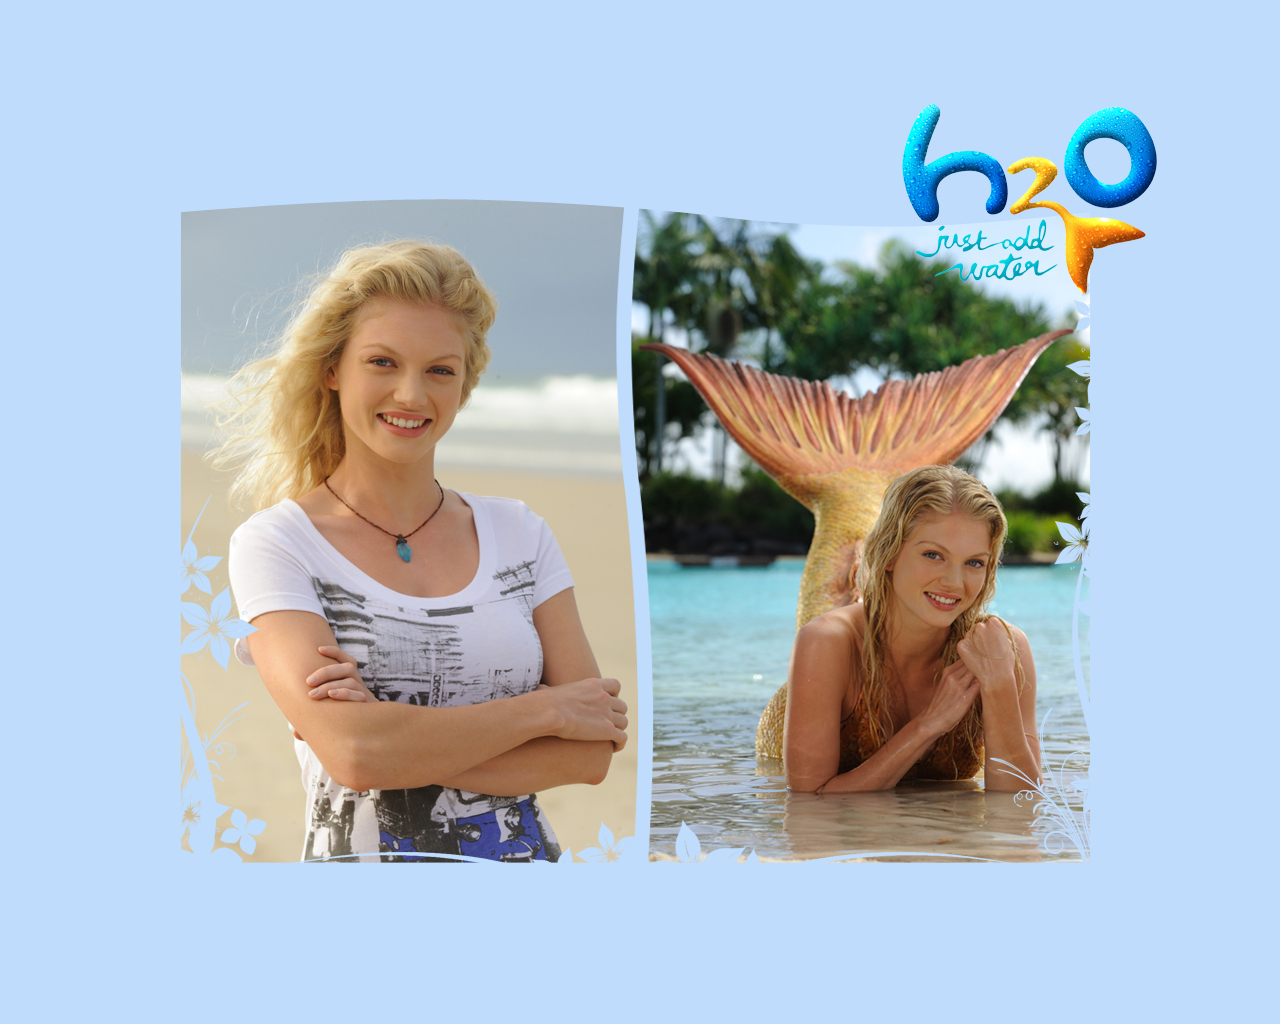 H2o rikki h2o just add water movies t v shows for H20 just add water cast